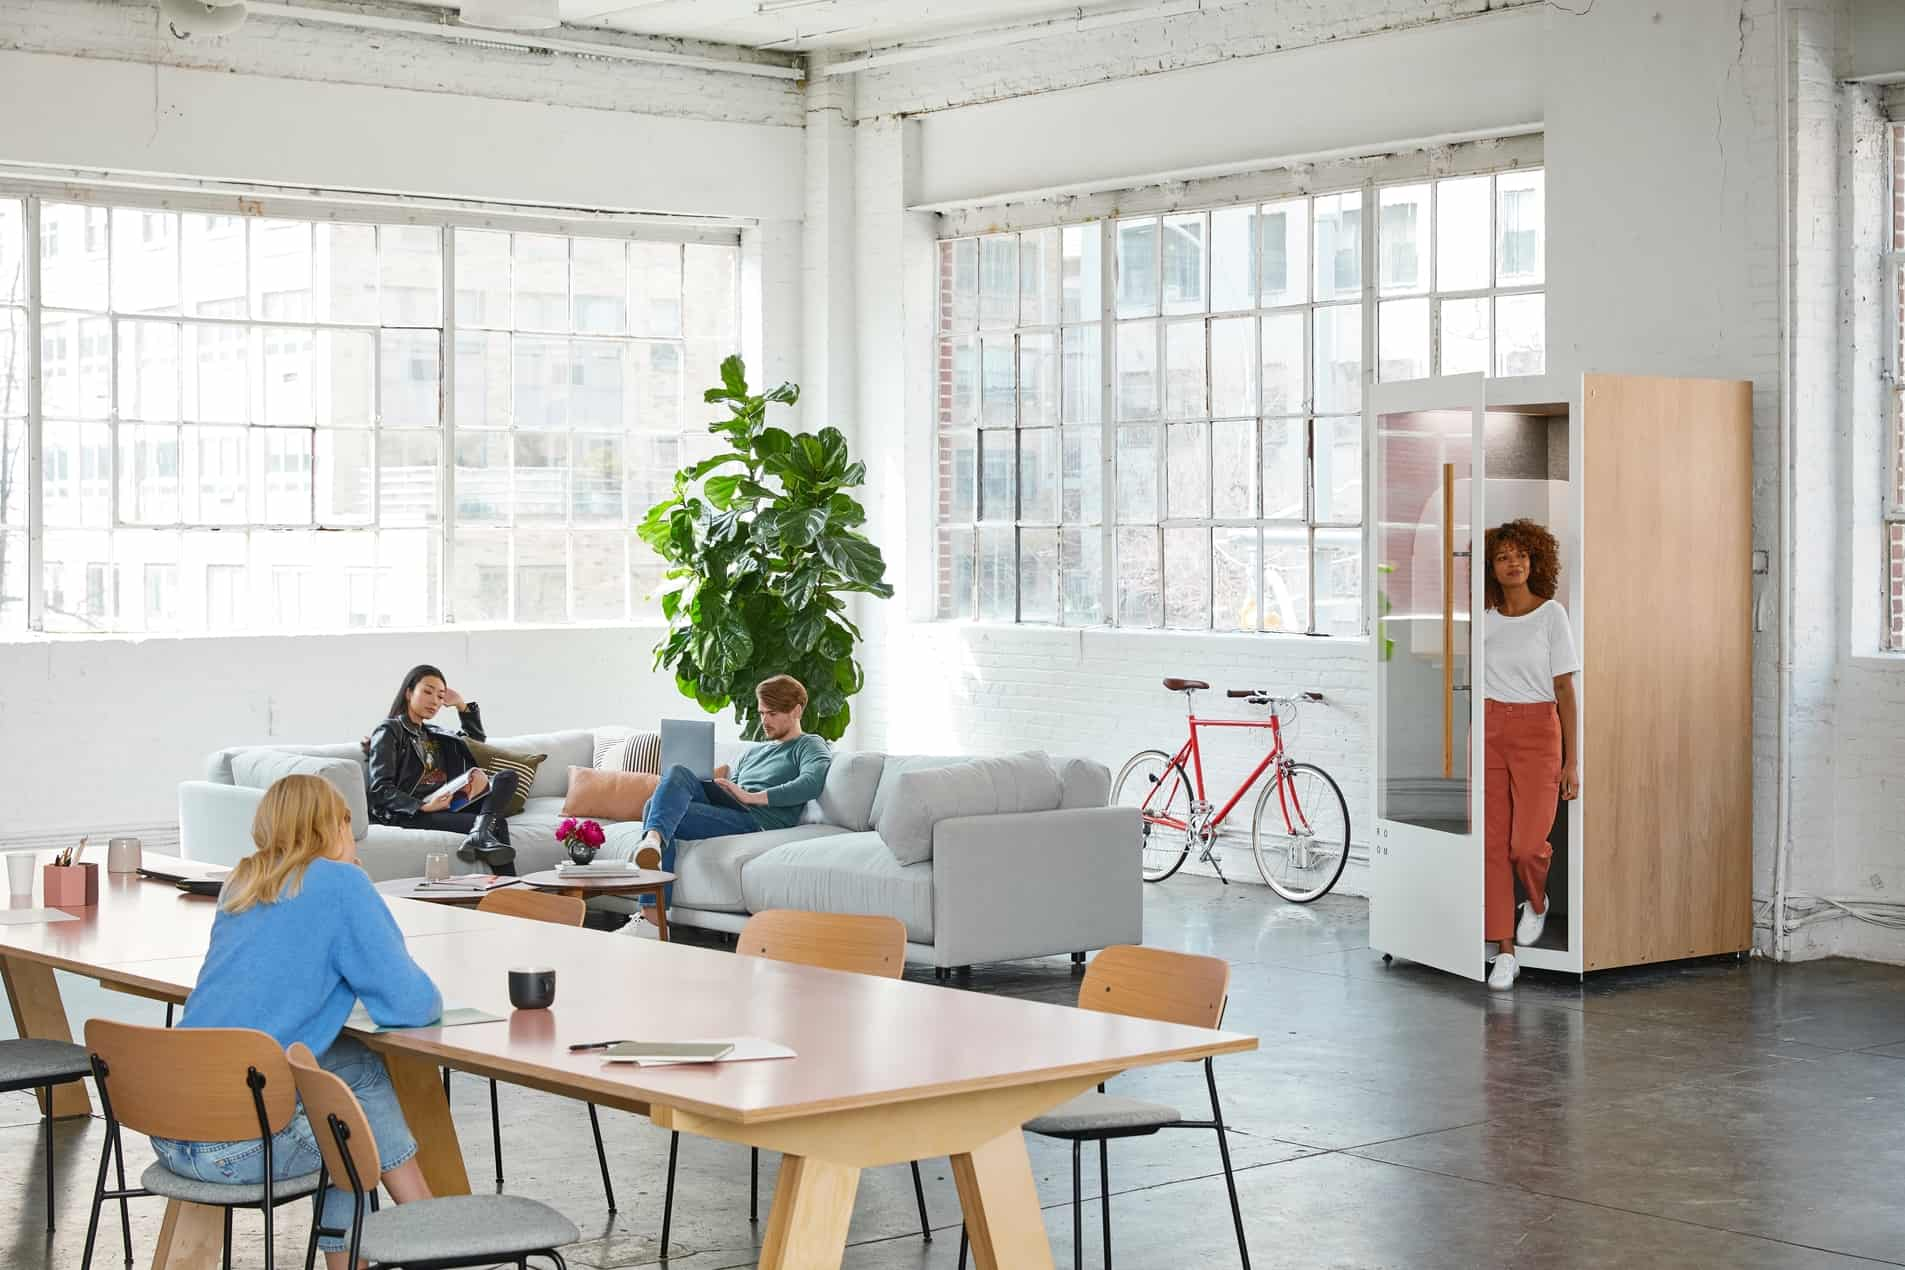 5 Ways to Make Your Office More Sustainable